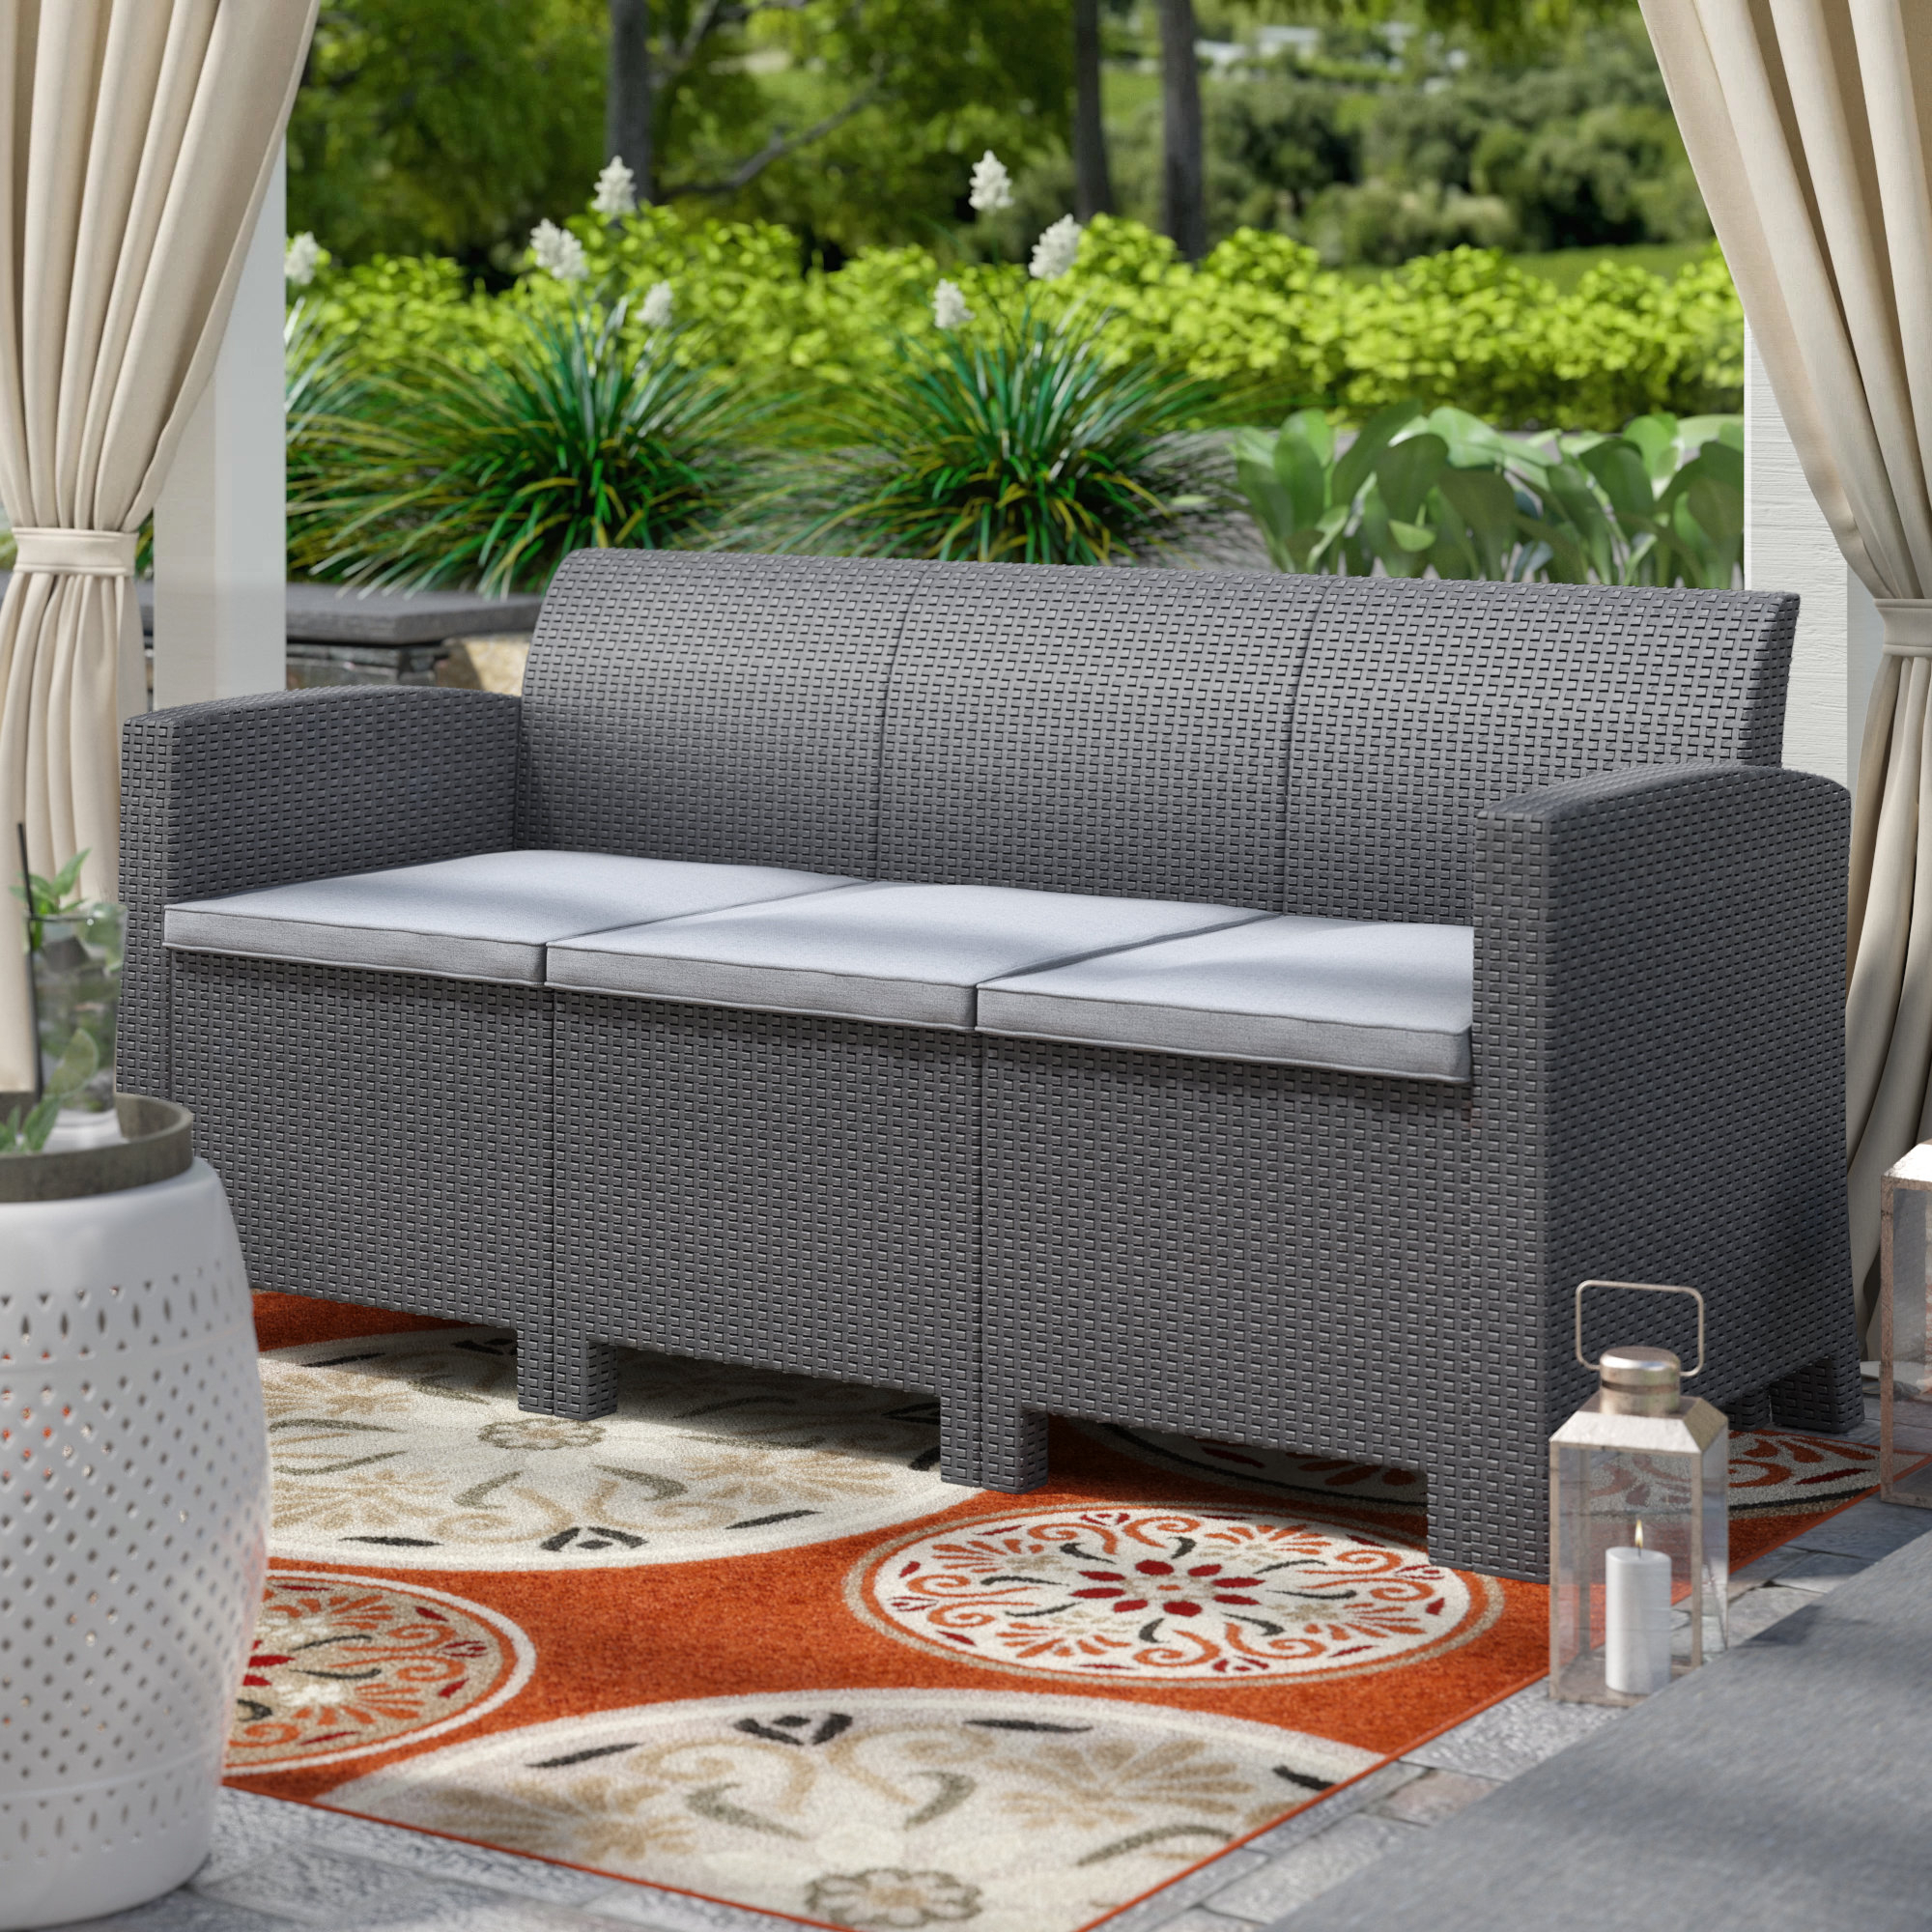 Stockwell Patio Sofas With Cushions Intended For Most Recently Released Yoselin Patio Sofa With Cushions (View 15 of 20)